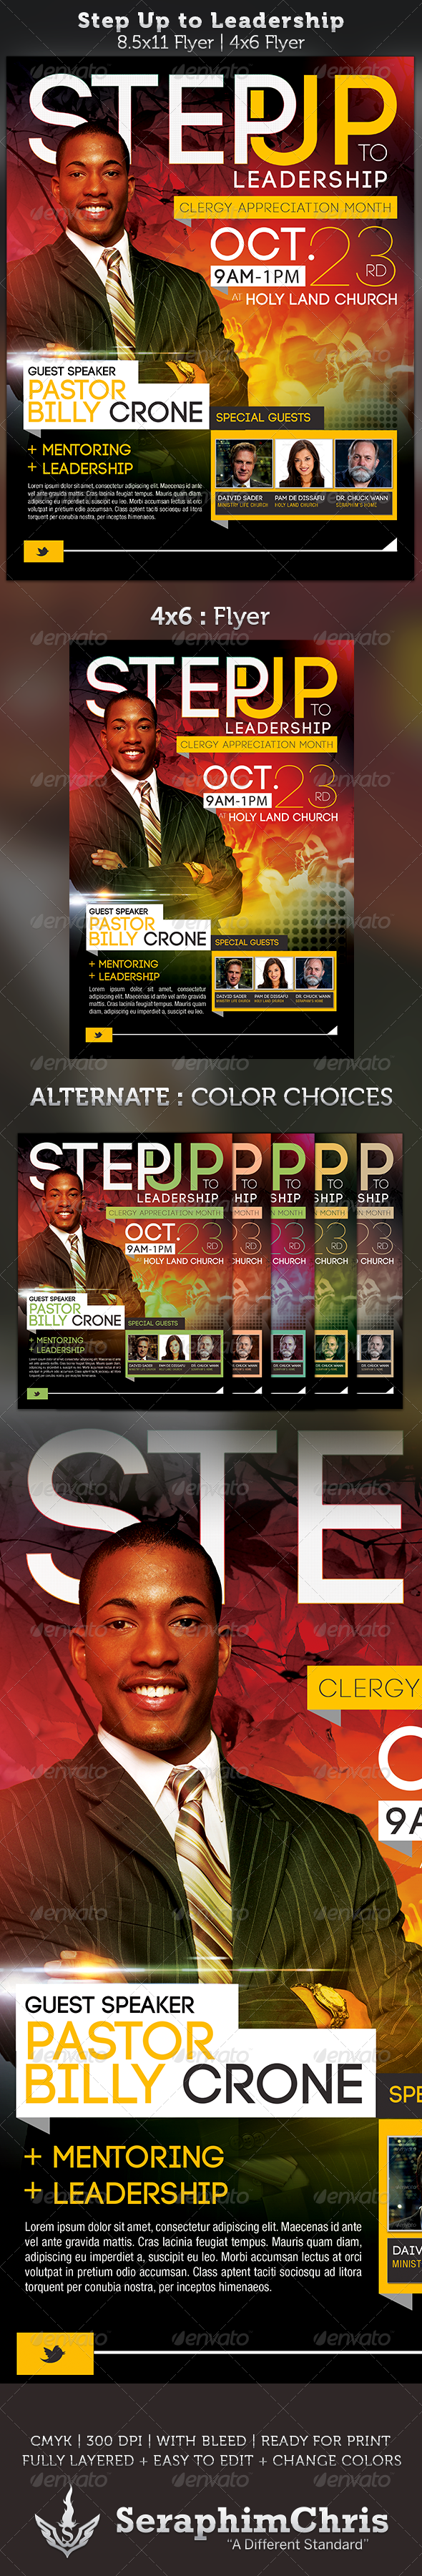 Step Up to Leadership Church Flyer Template